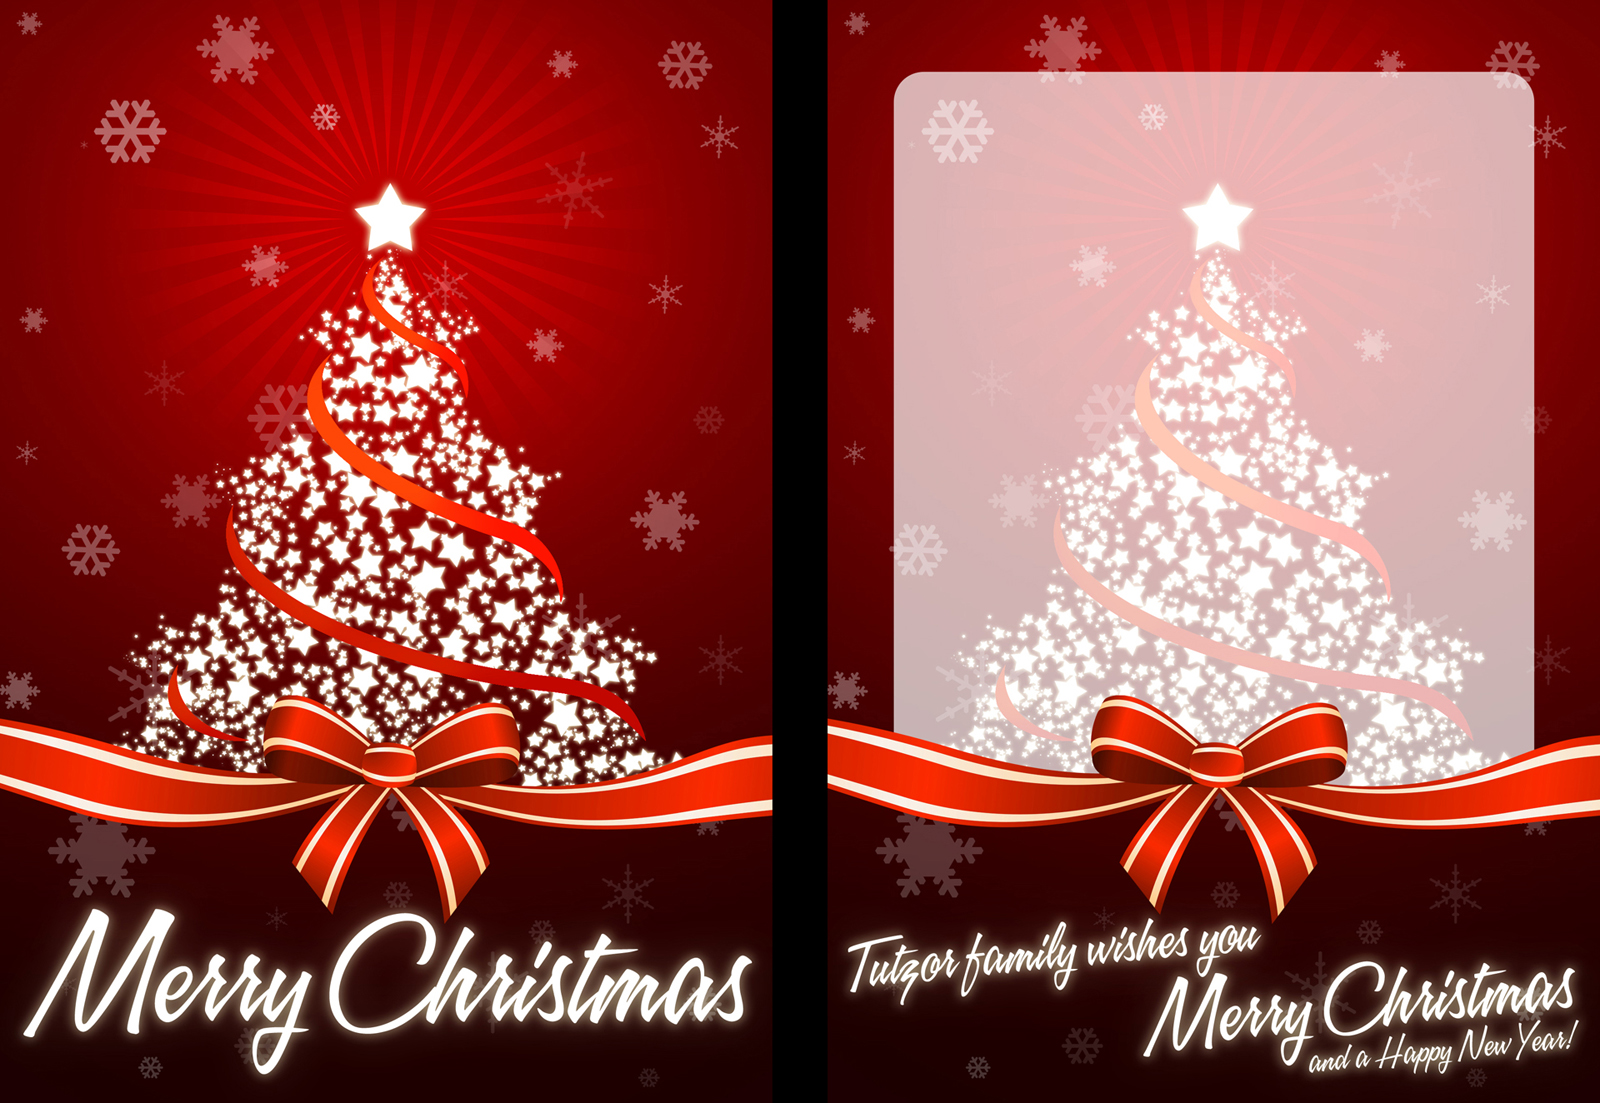 How to create your own Christmas card, ready for print | Tutzor